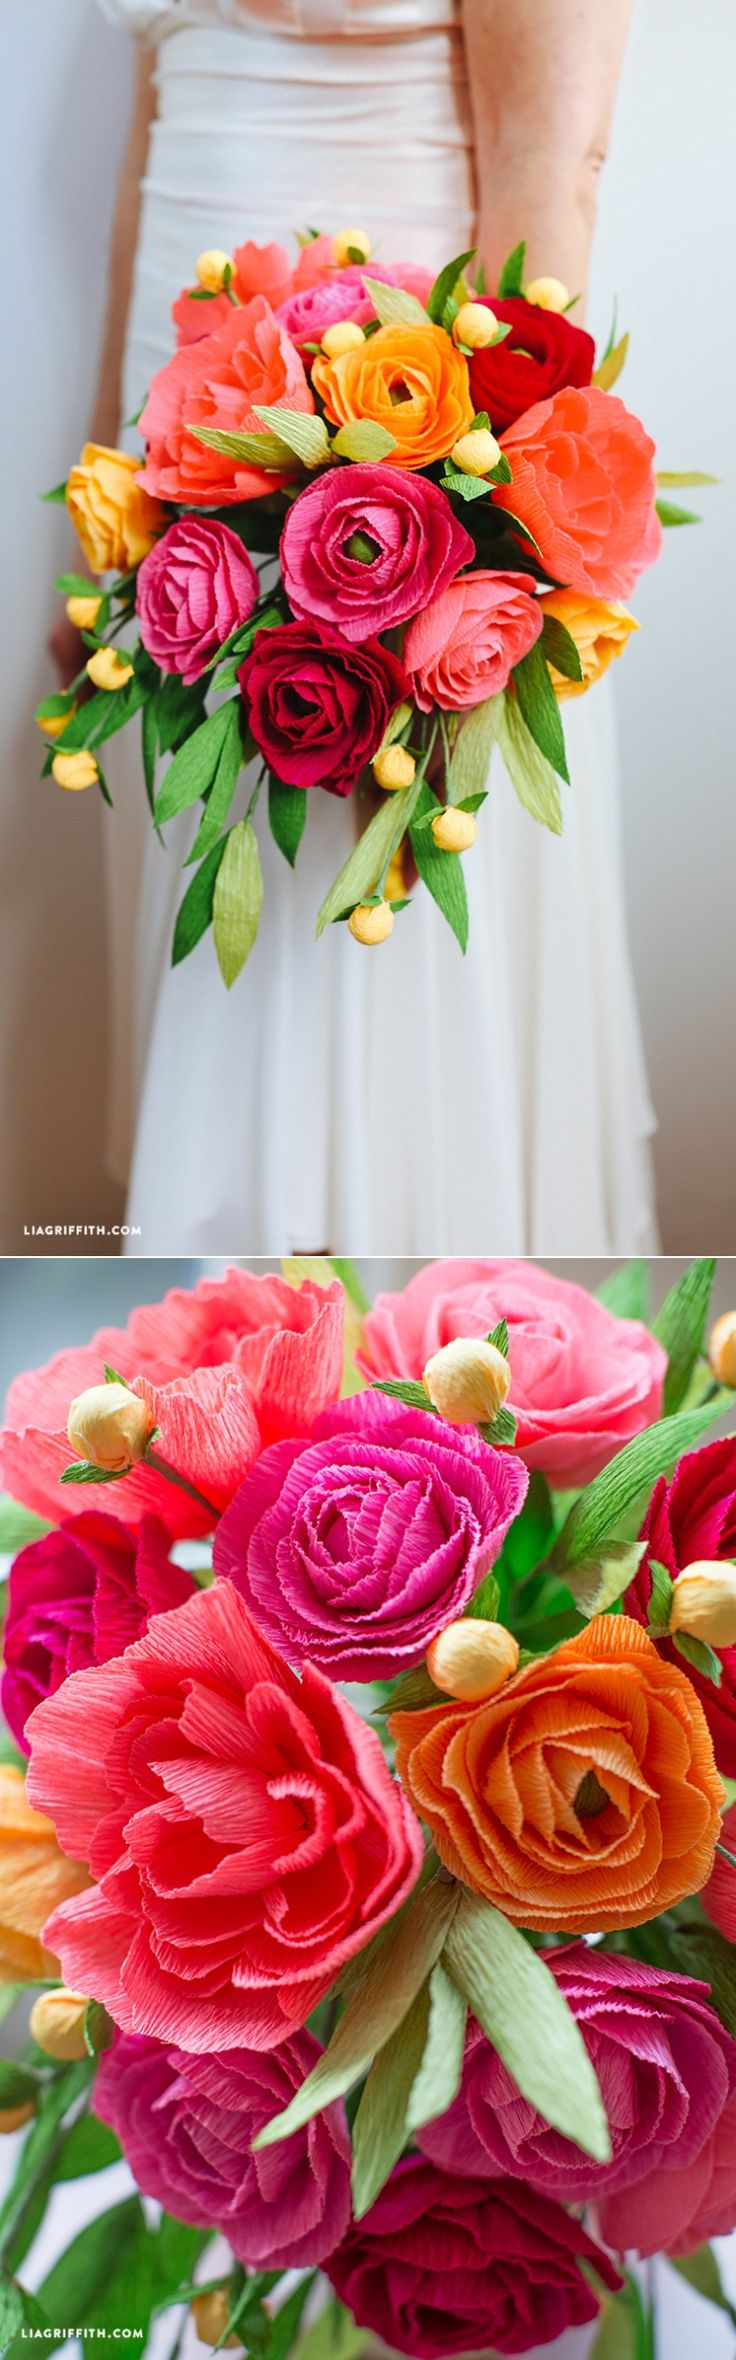 Crepe Paper Neon Wedding Bouquet  #RePin by AT Social Media Marketing - Pinterest Marketing Specialists ATSocialMedia.co.uk